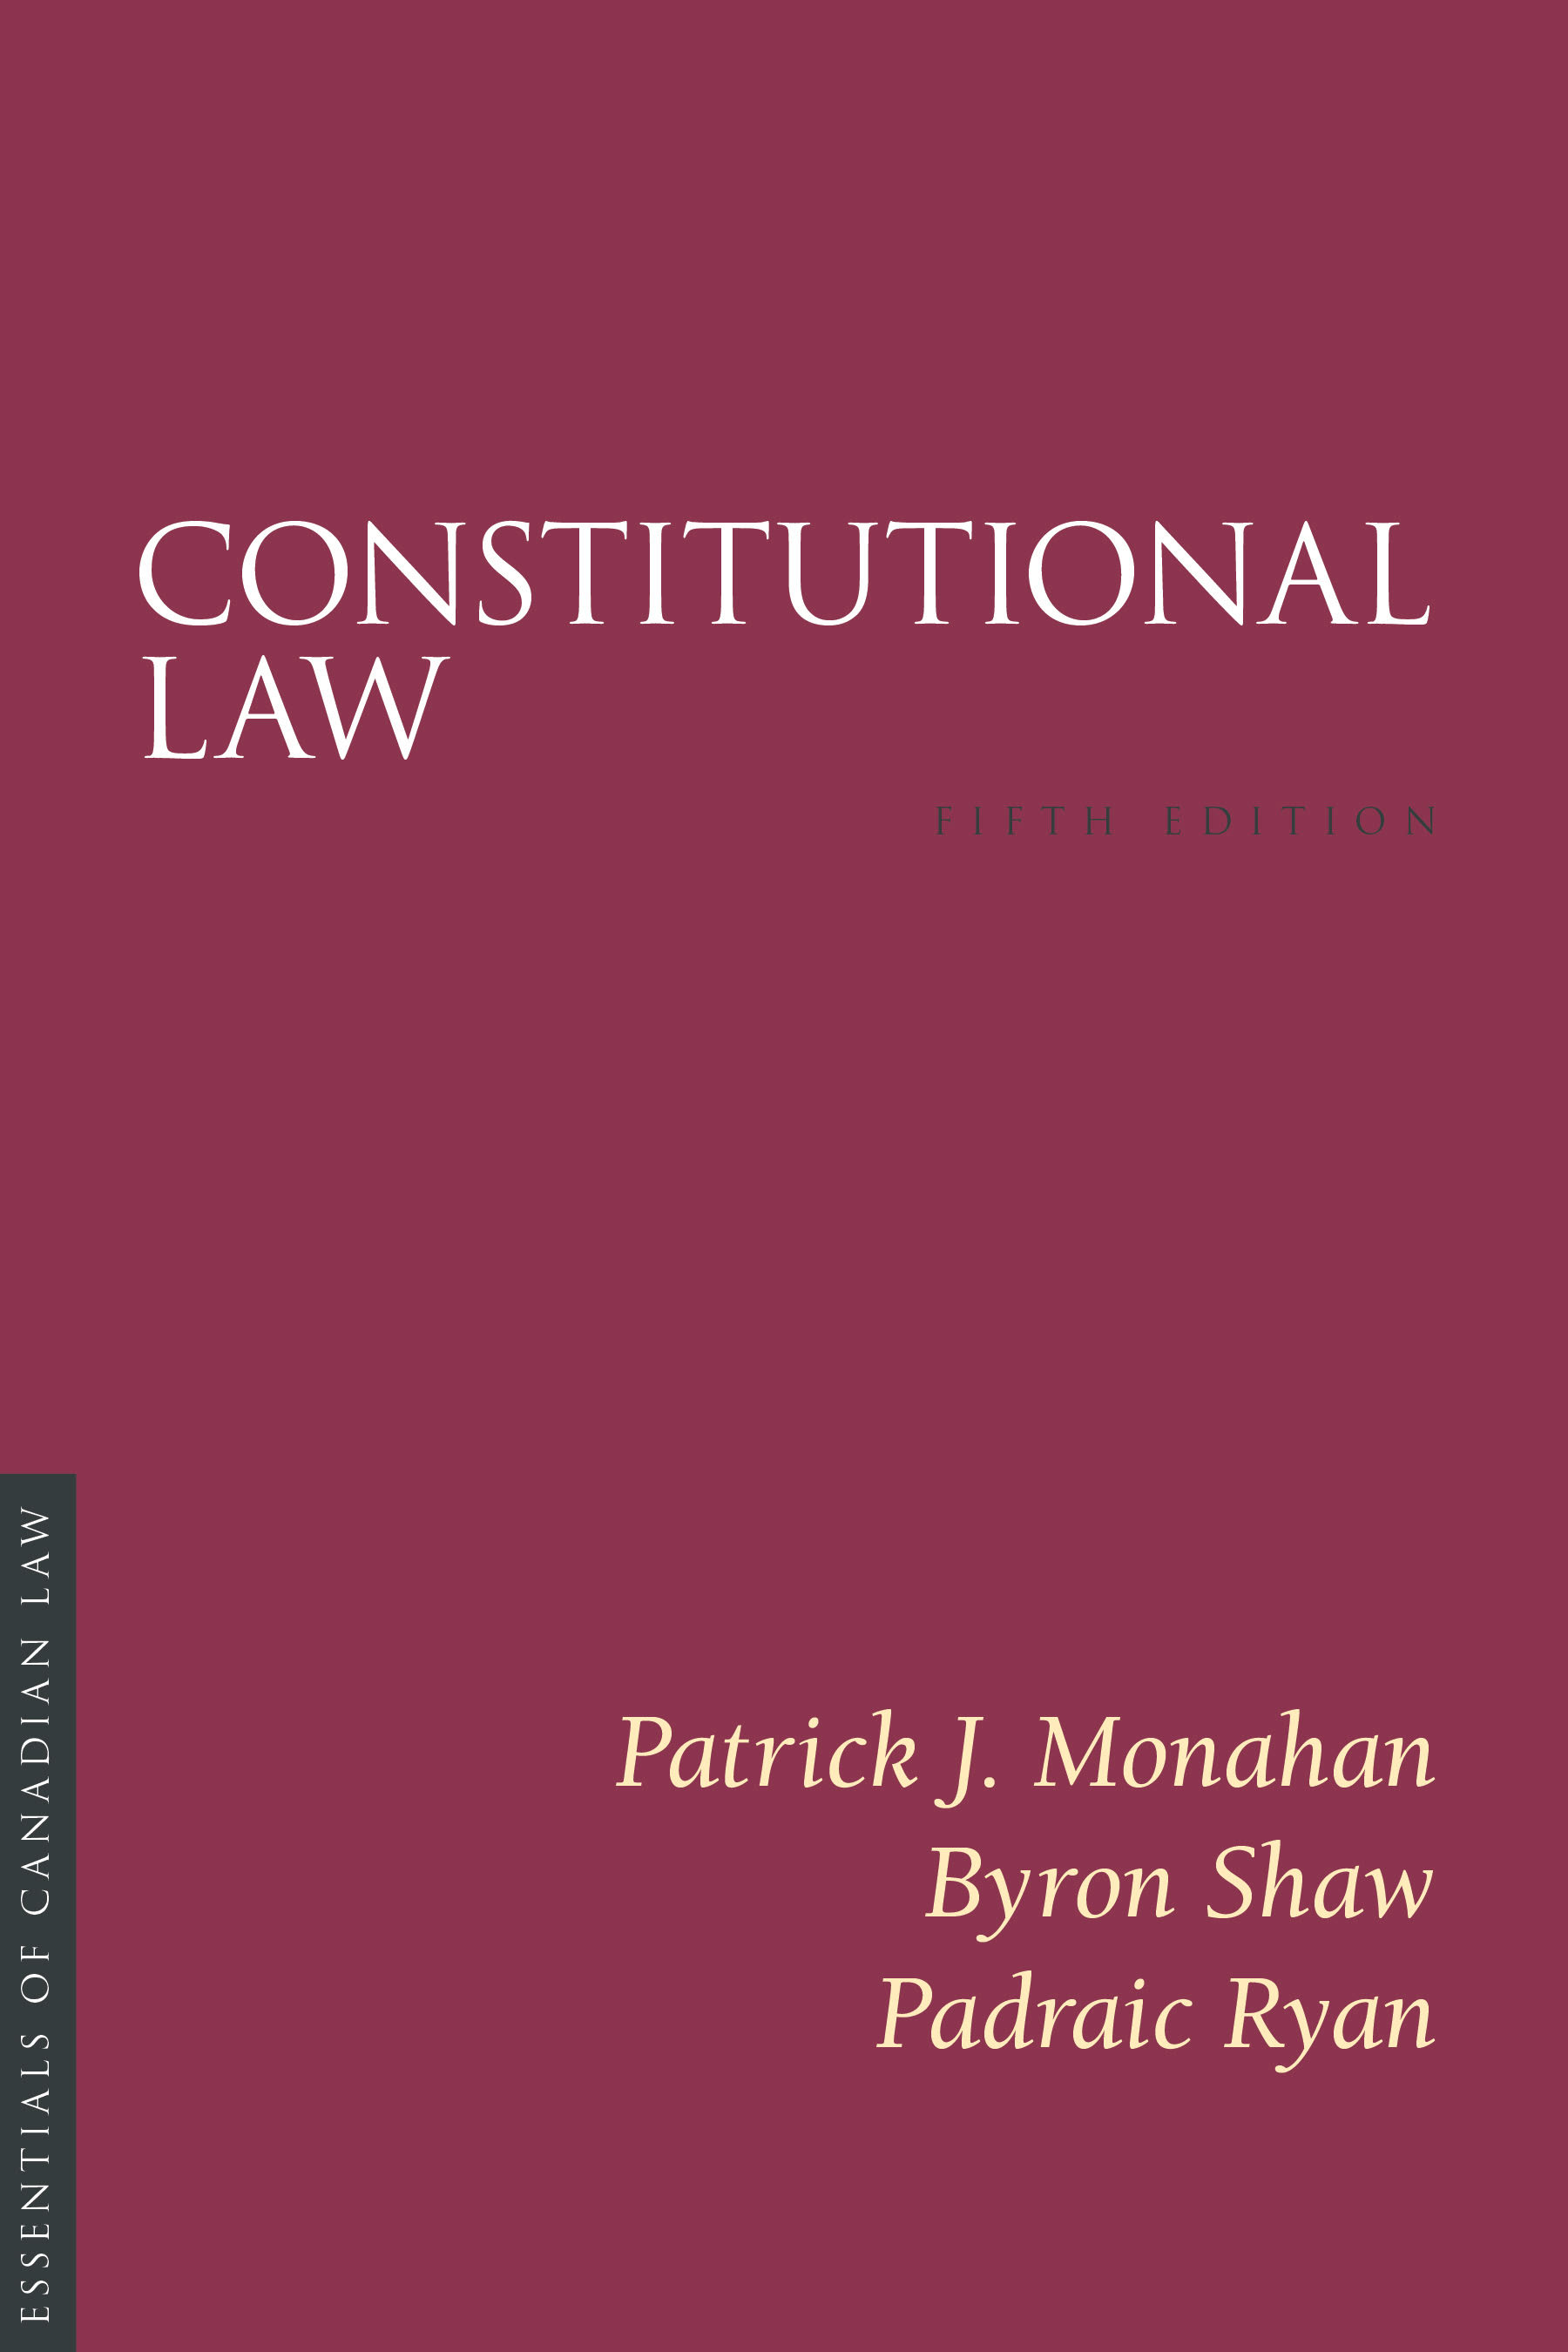 Constitutional Law, 5th edition